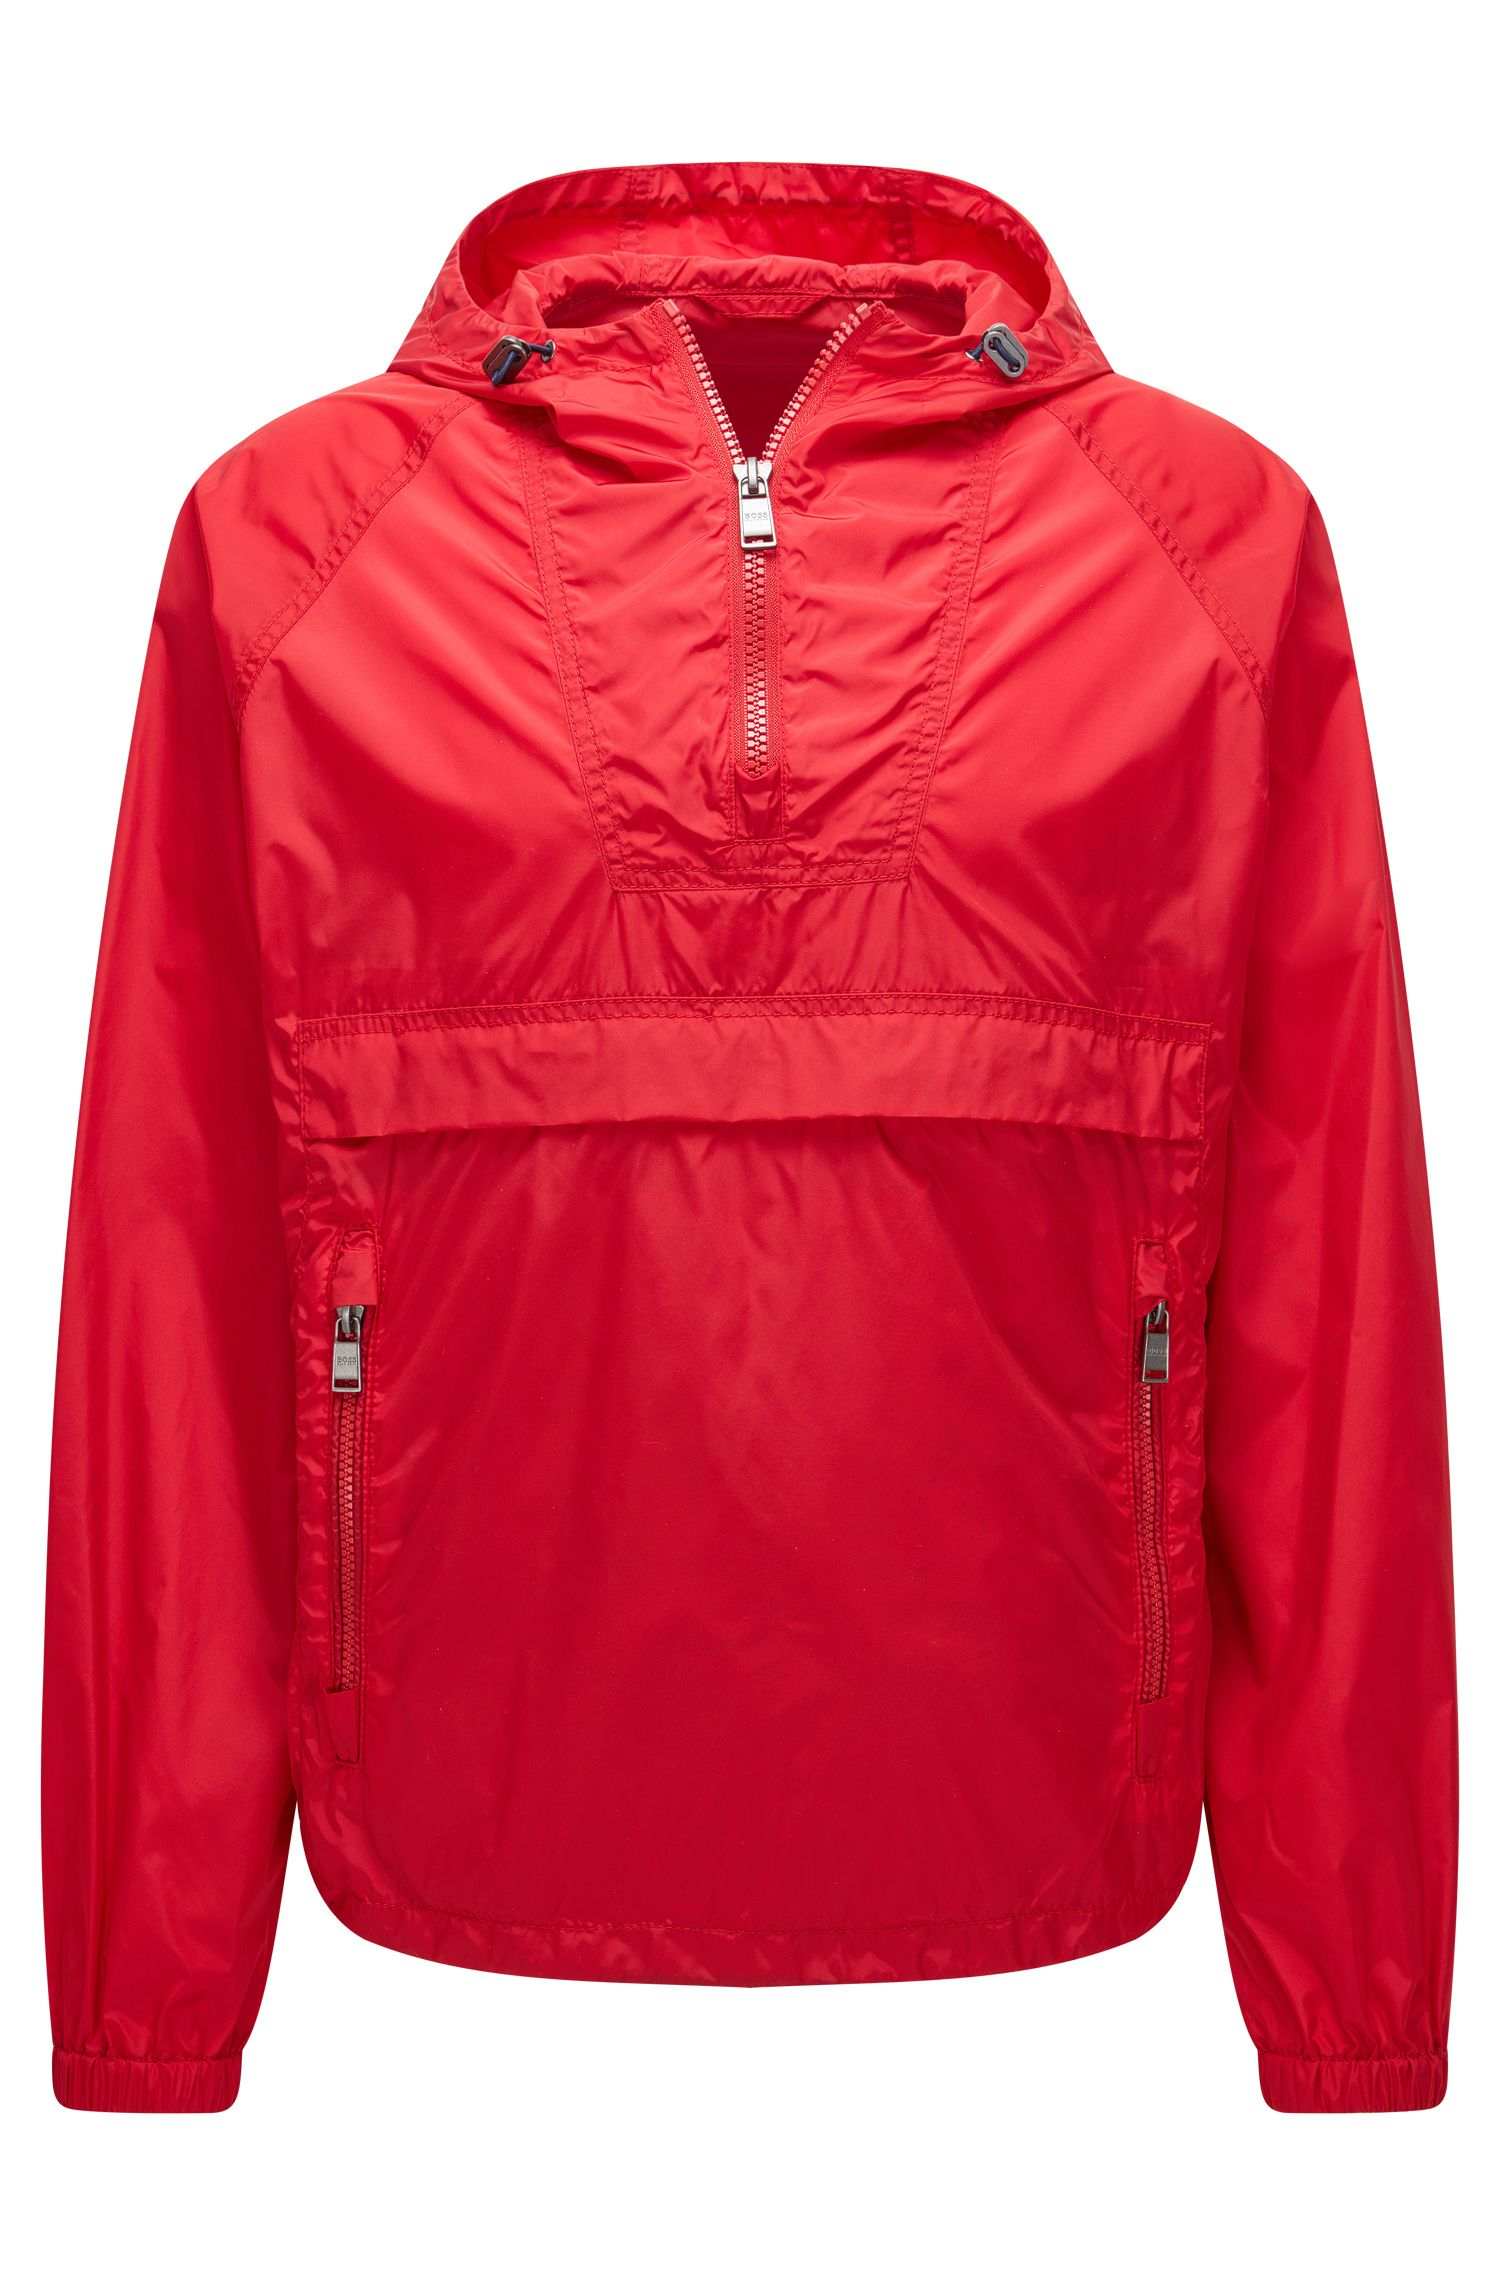 'Carbourn' | Nylon Rain Jacket, Red